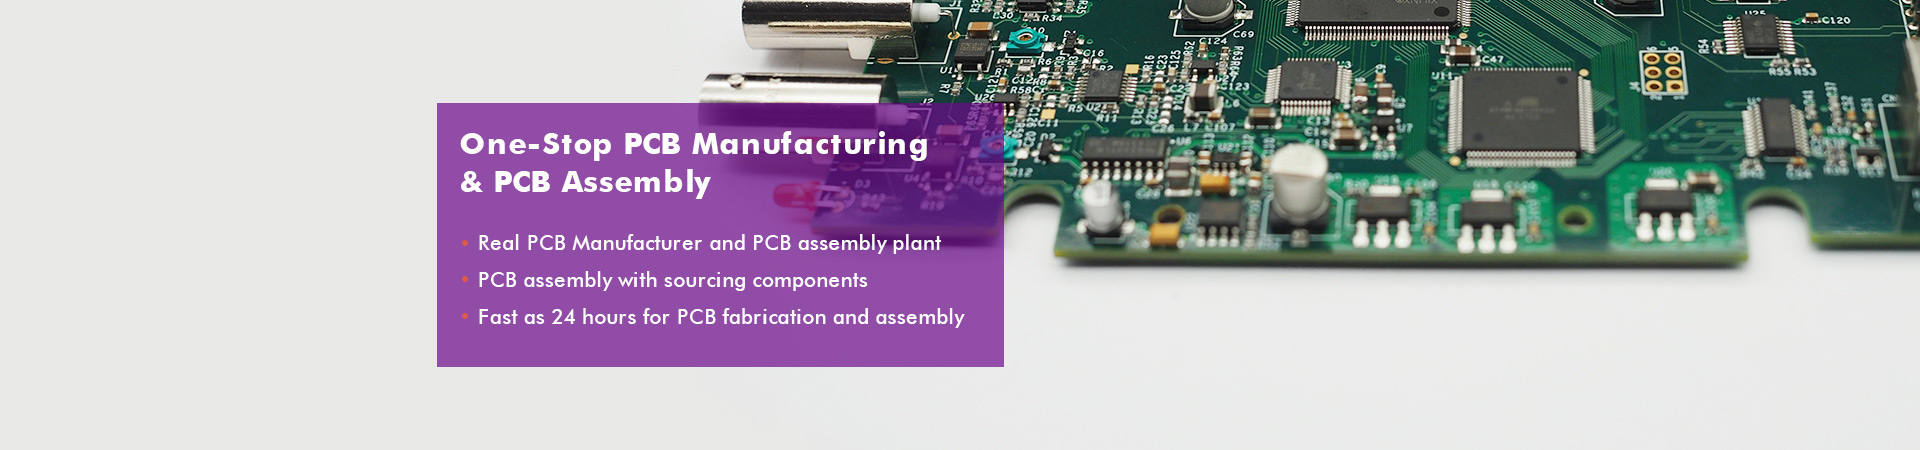 One-Stop PCB Manufacturing&Assembly